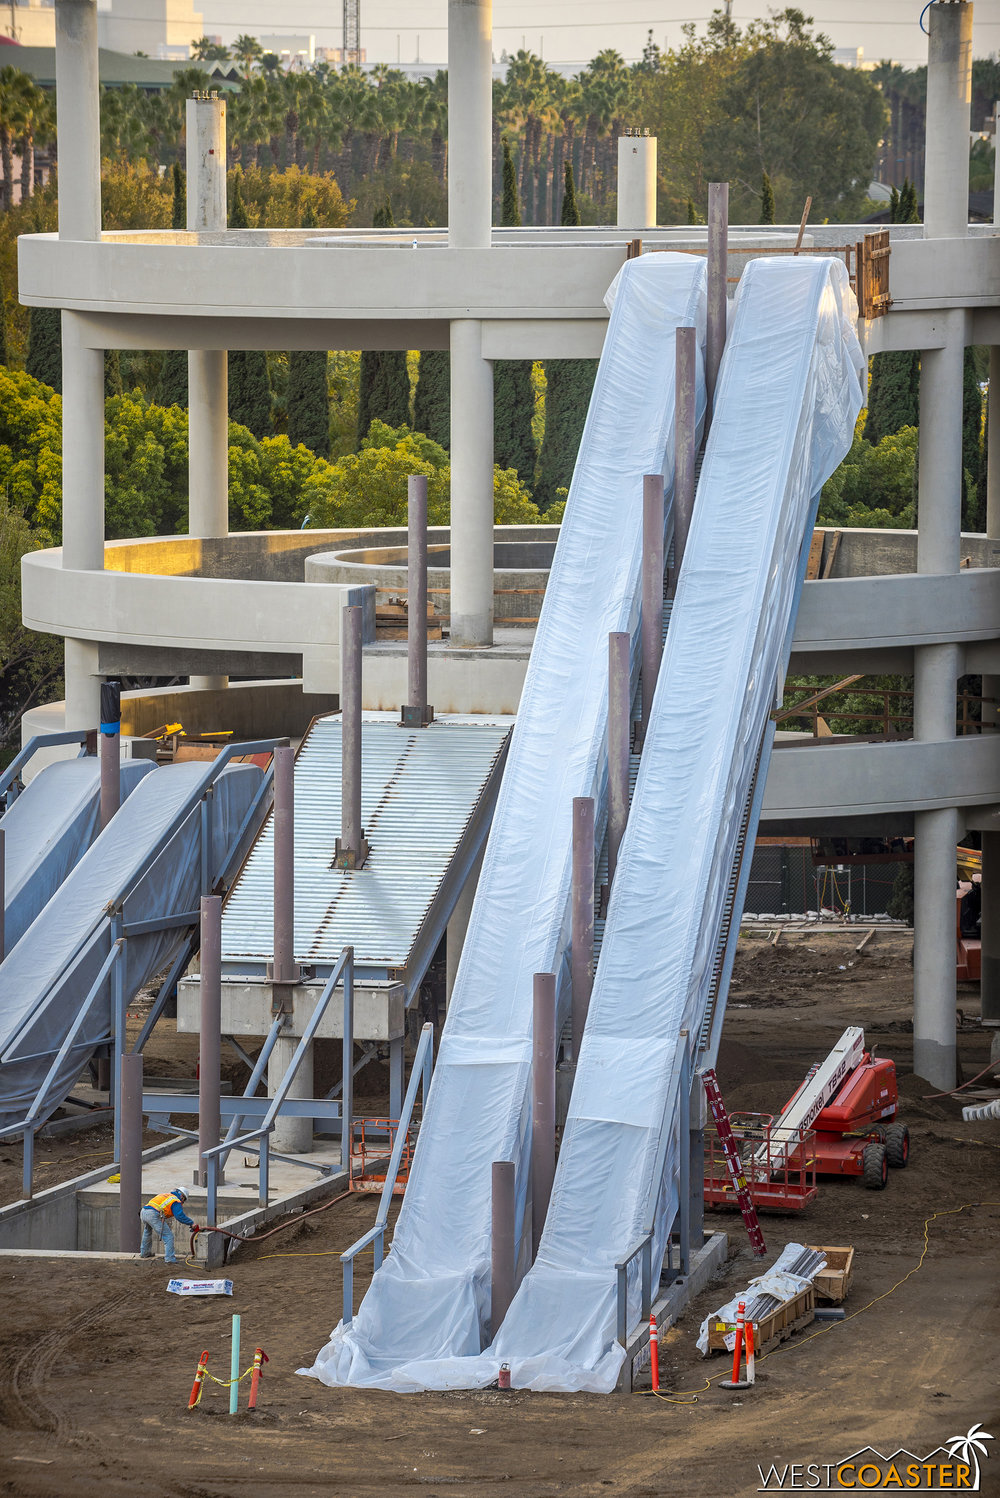 The escalators up to the fifth floor have been installed!  But they remain covered to protect against the weather.